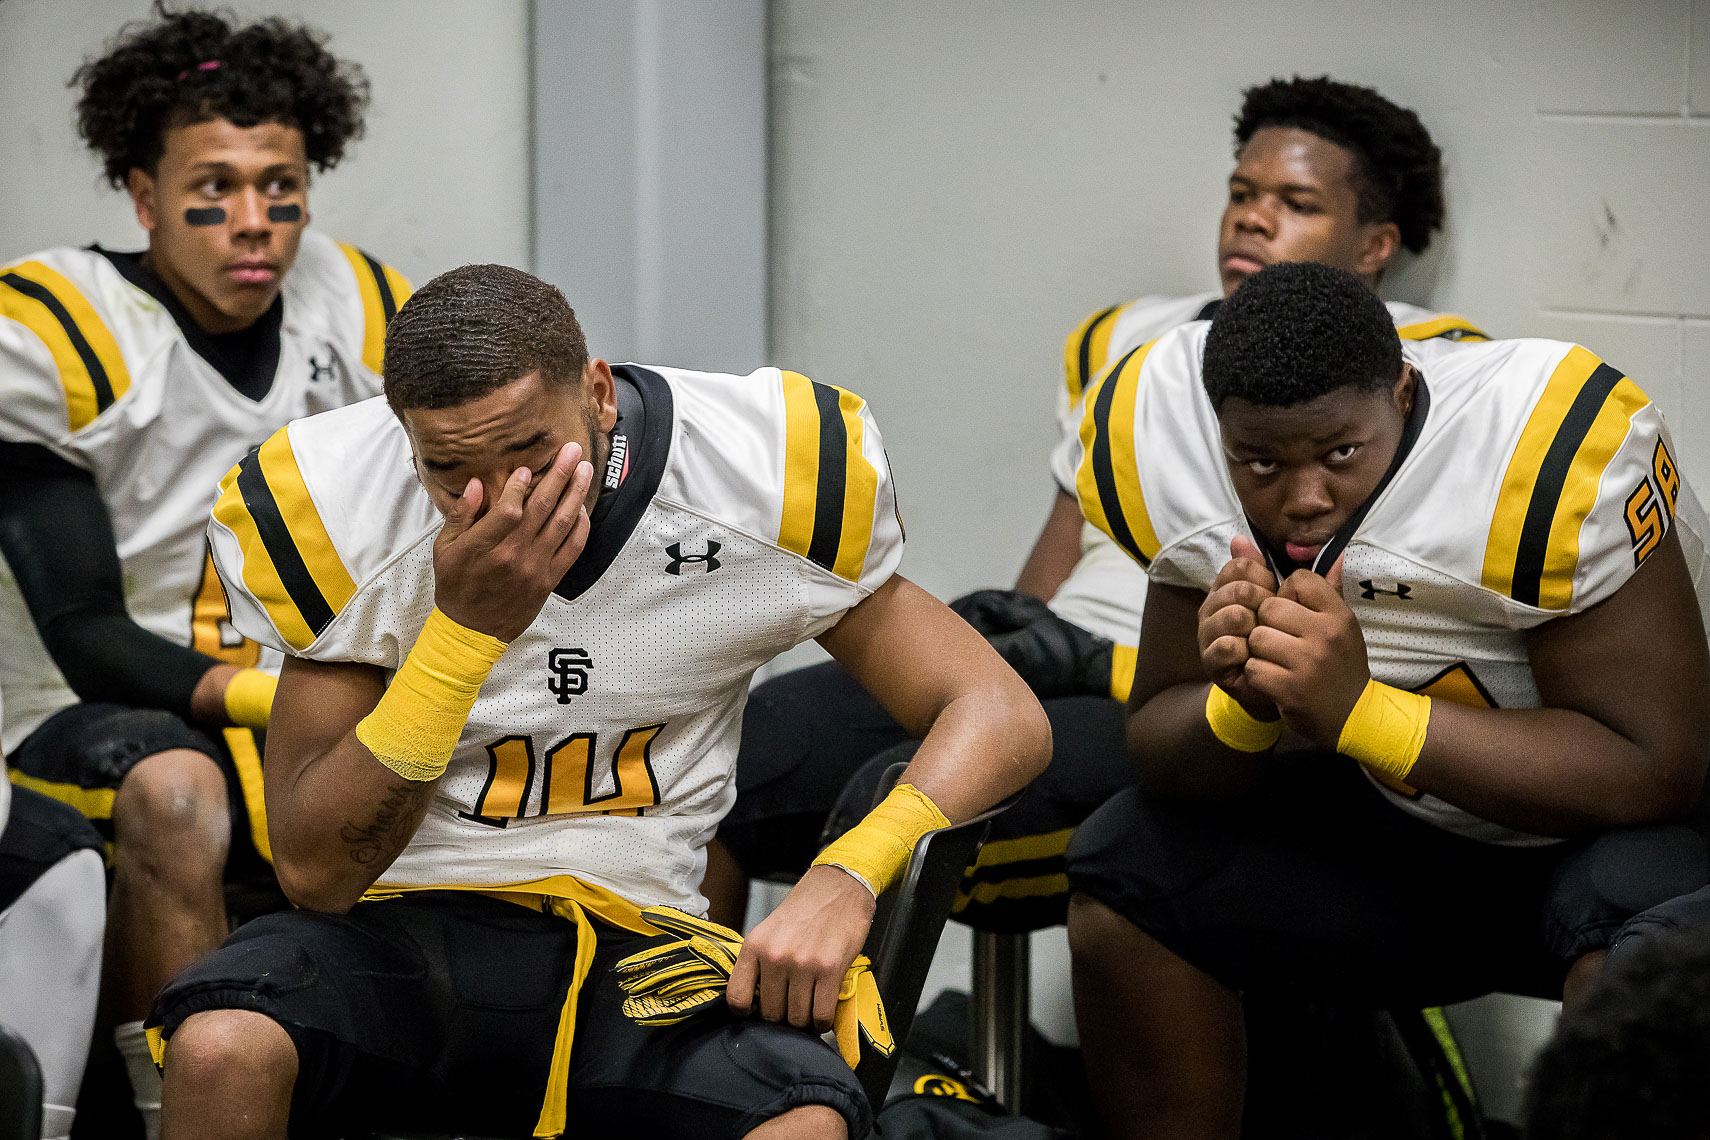 stfrances37_ St Frances Academy Panthers football Baltimore City poverty ESPN documentary MIAA Champions youth football team versus IMG Academy football Bradenton Florida Under Armour emotional sports p